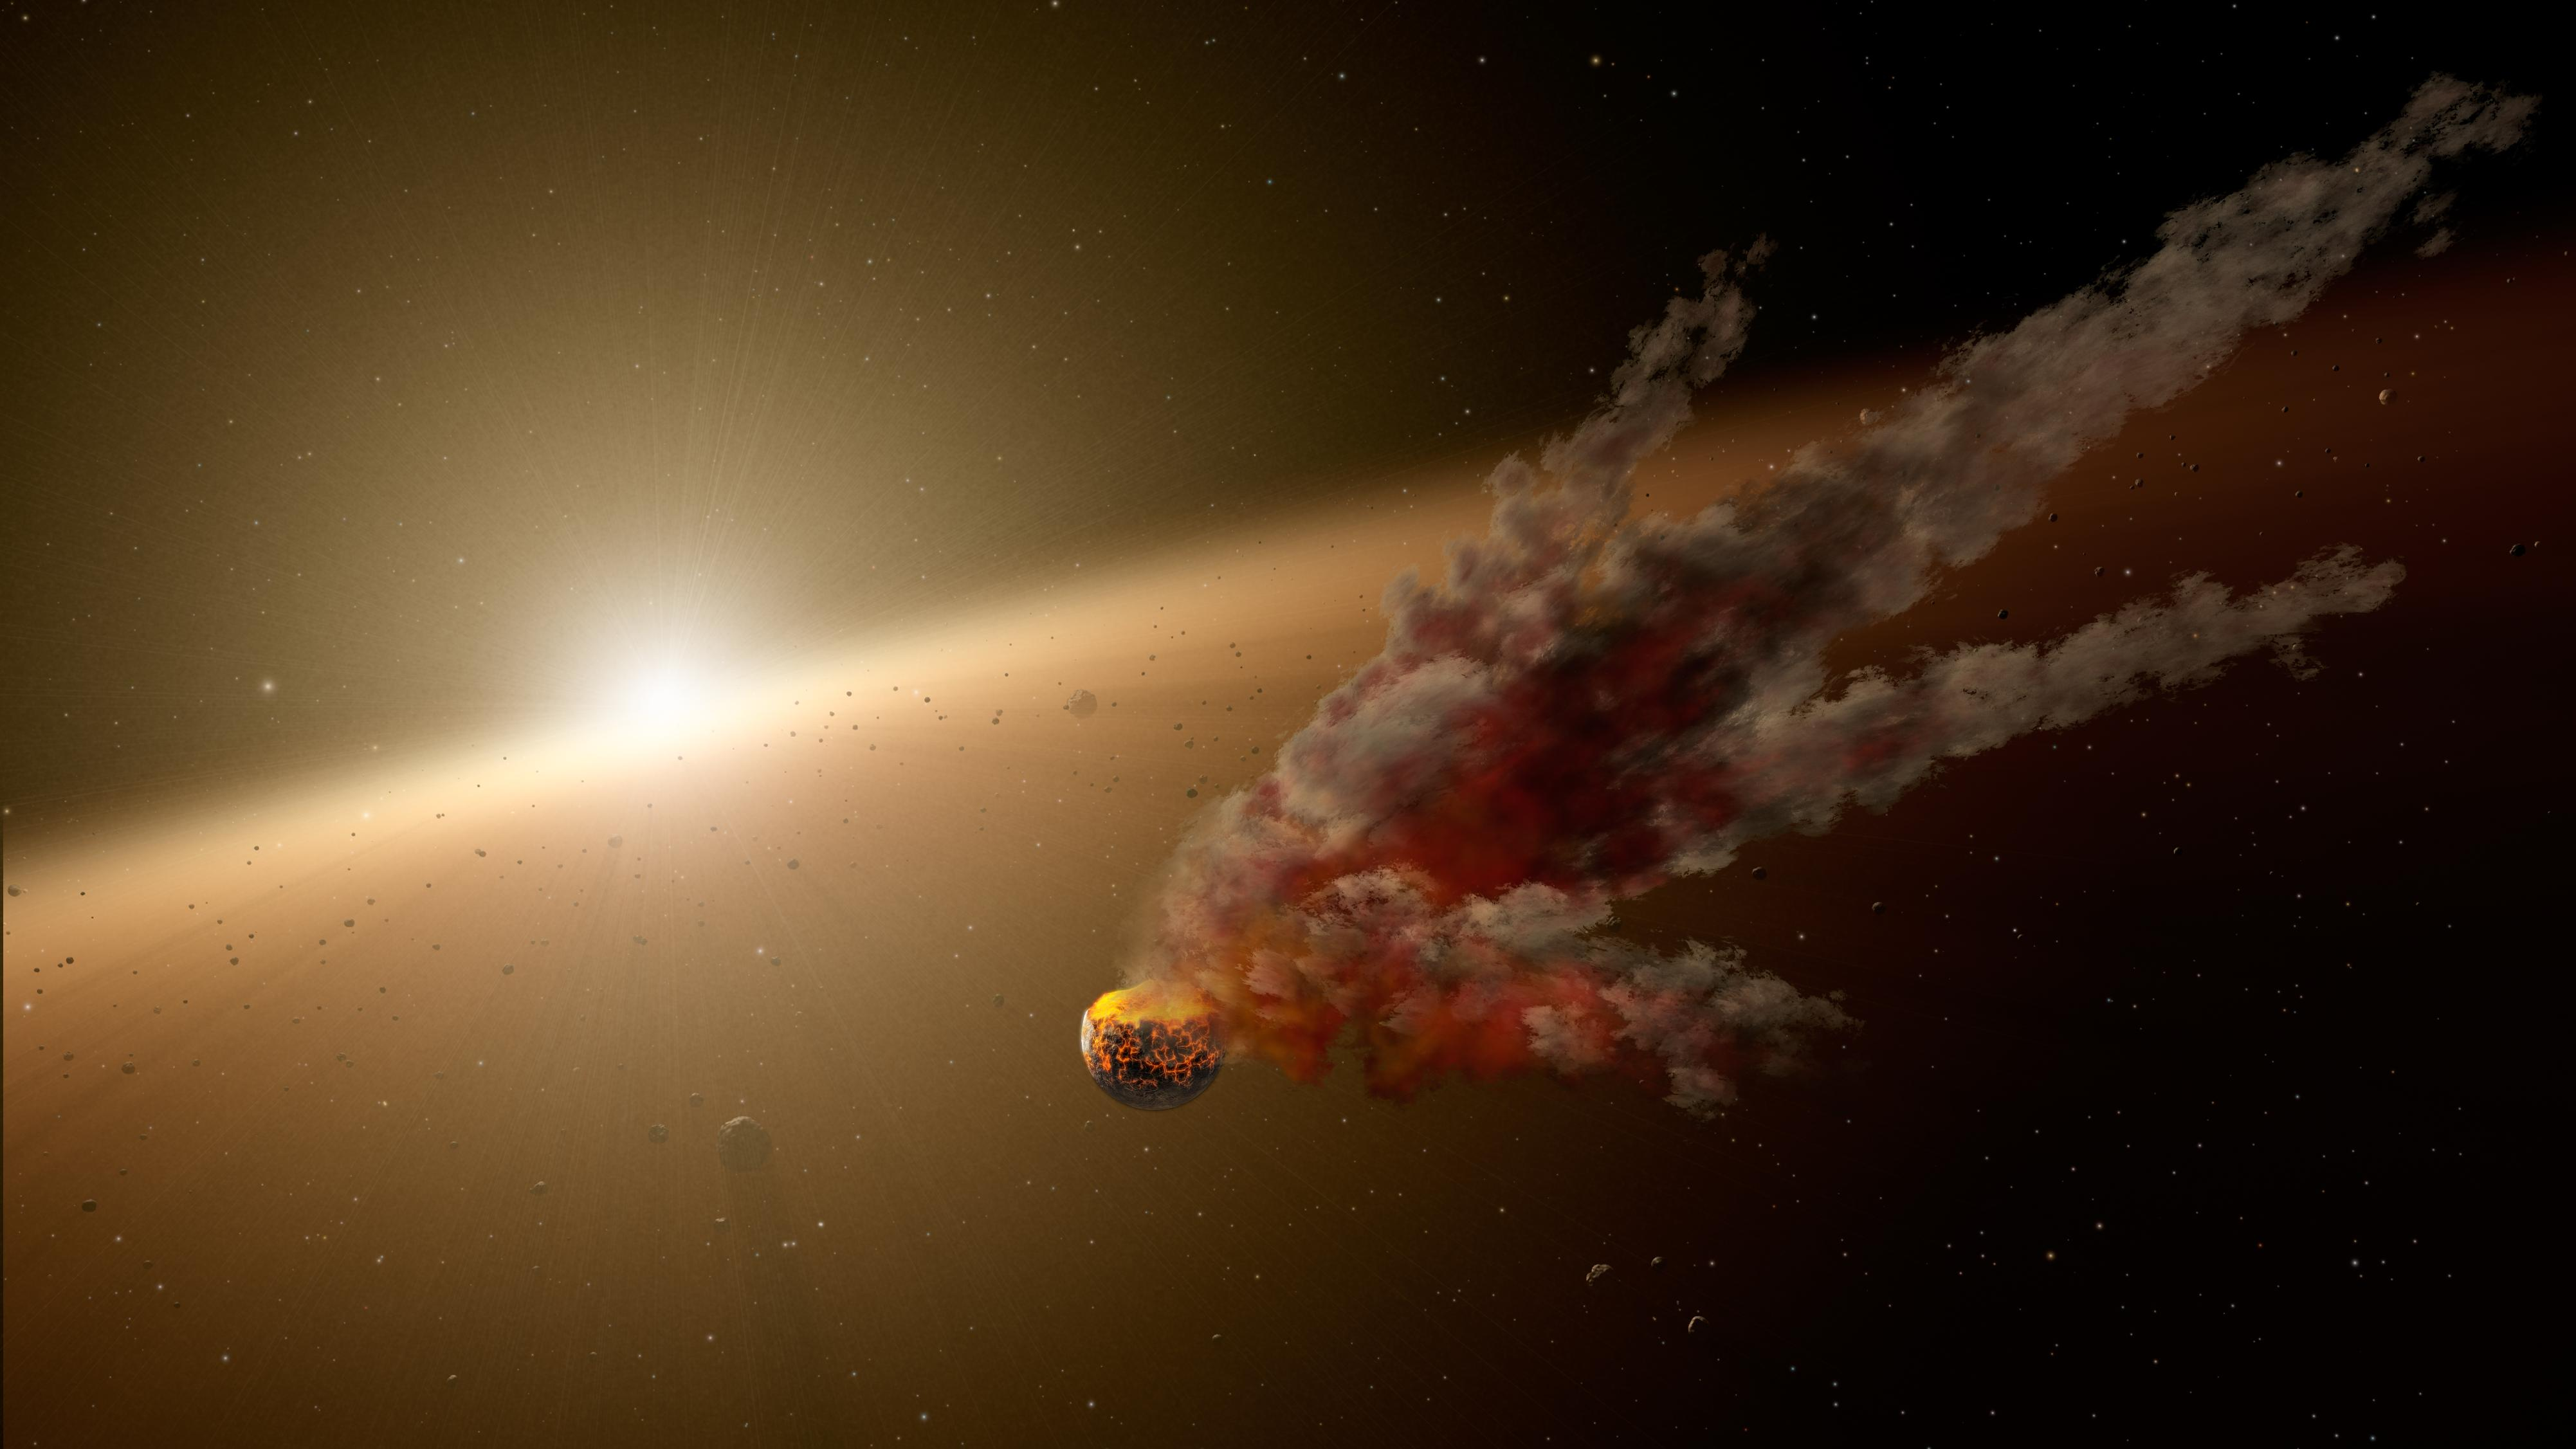 Asteroid smash-up tells of rocky road to planet formation – Astro Bob